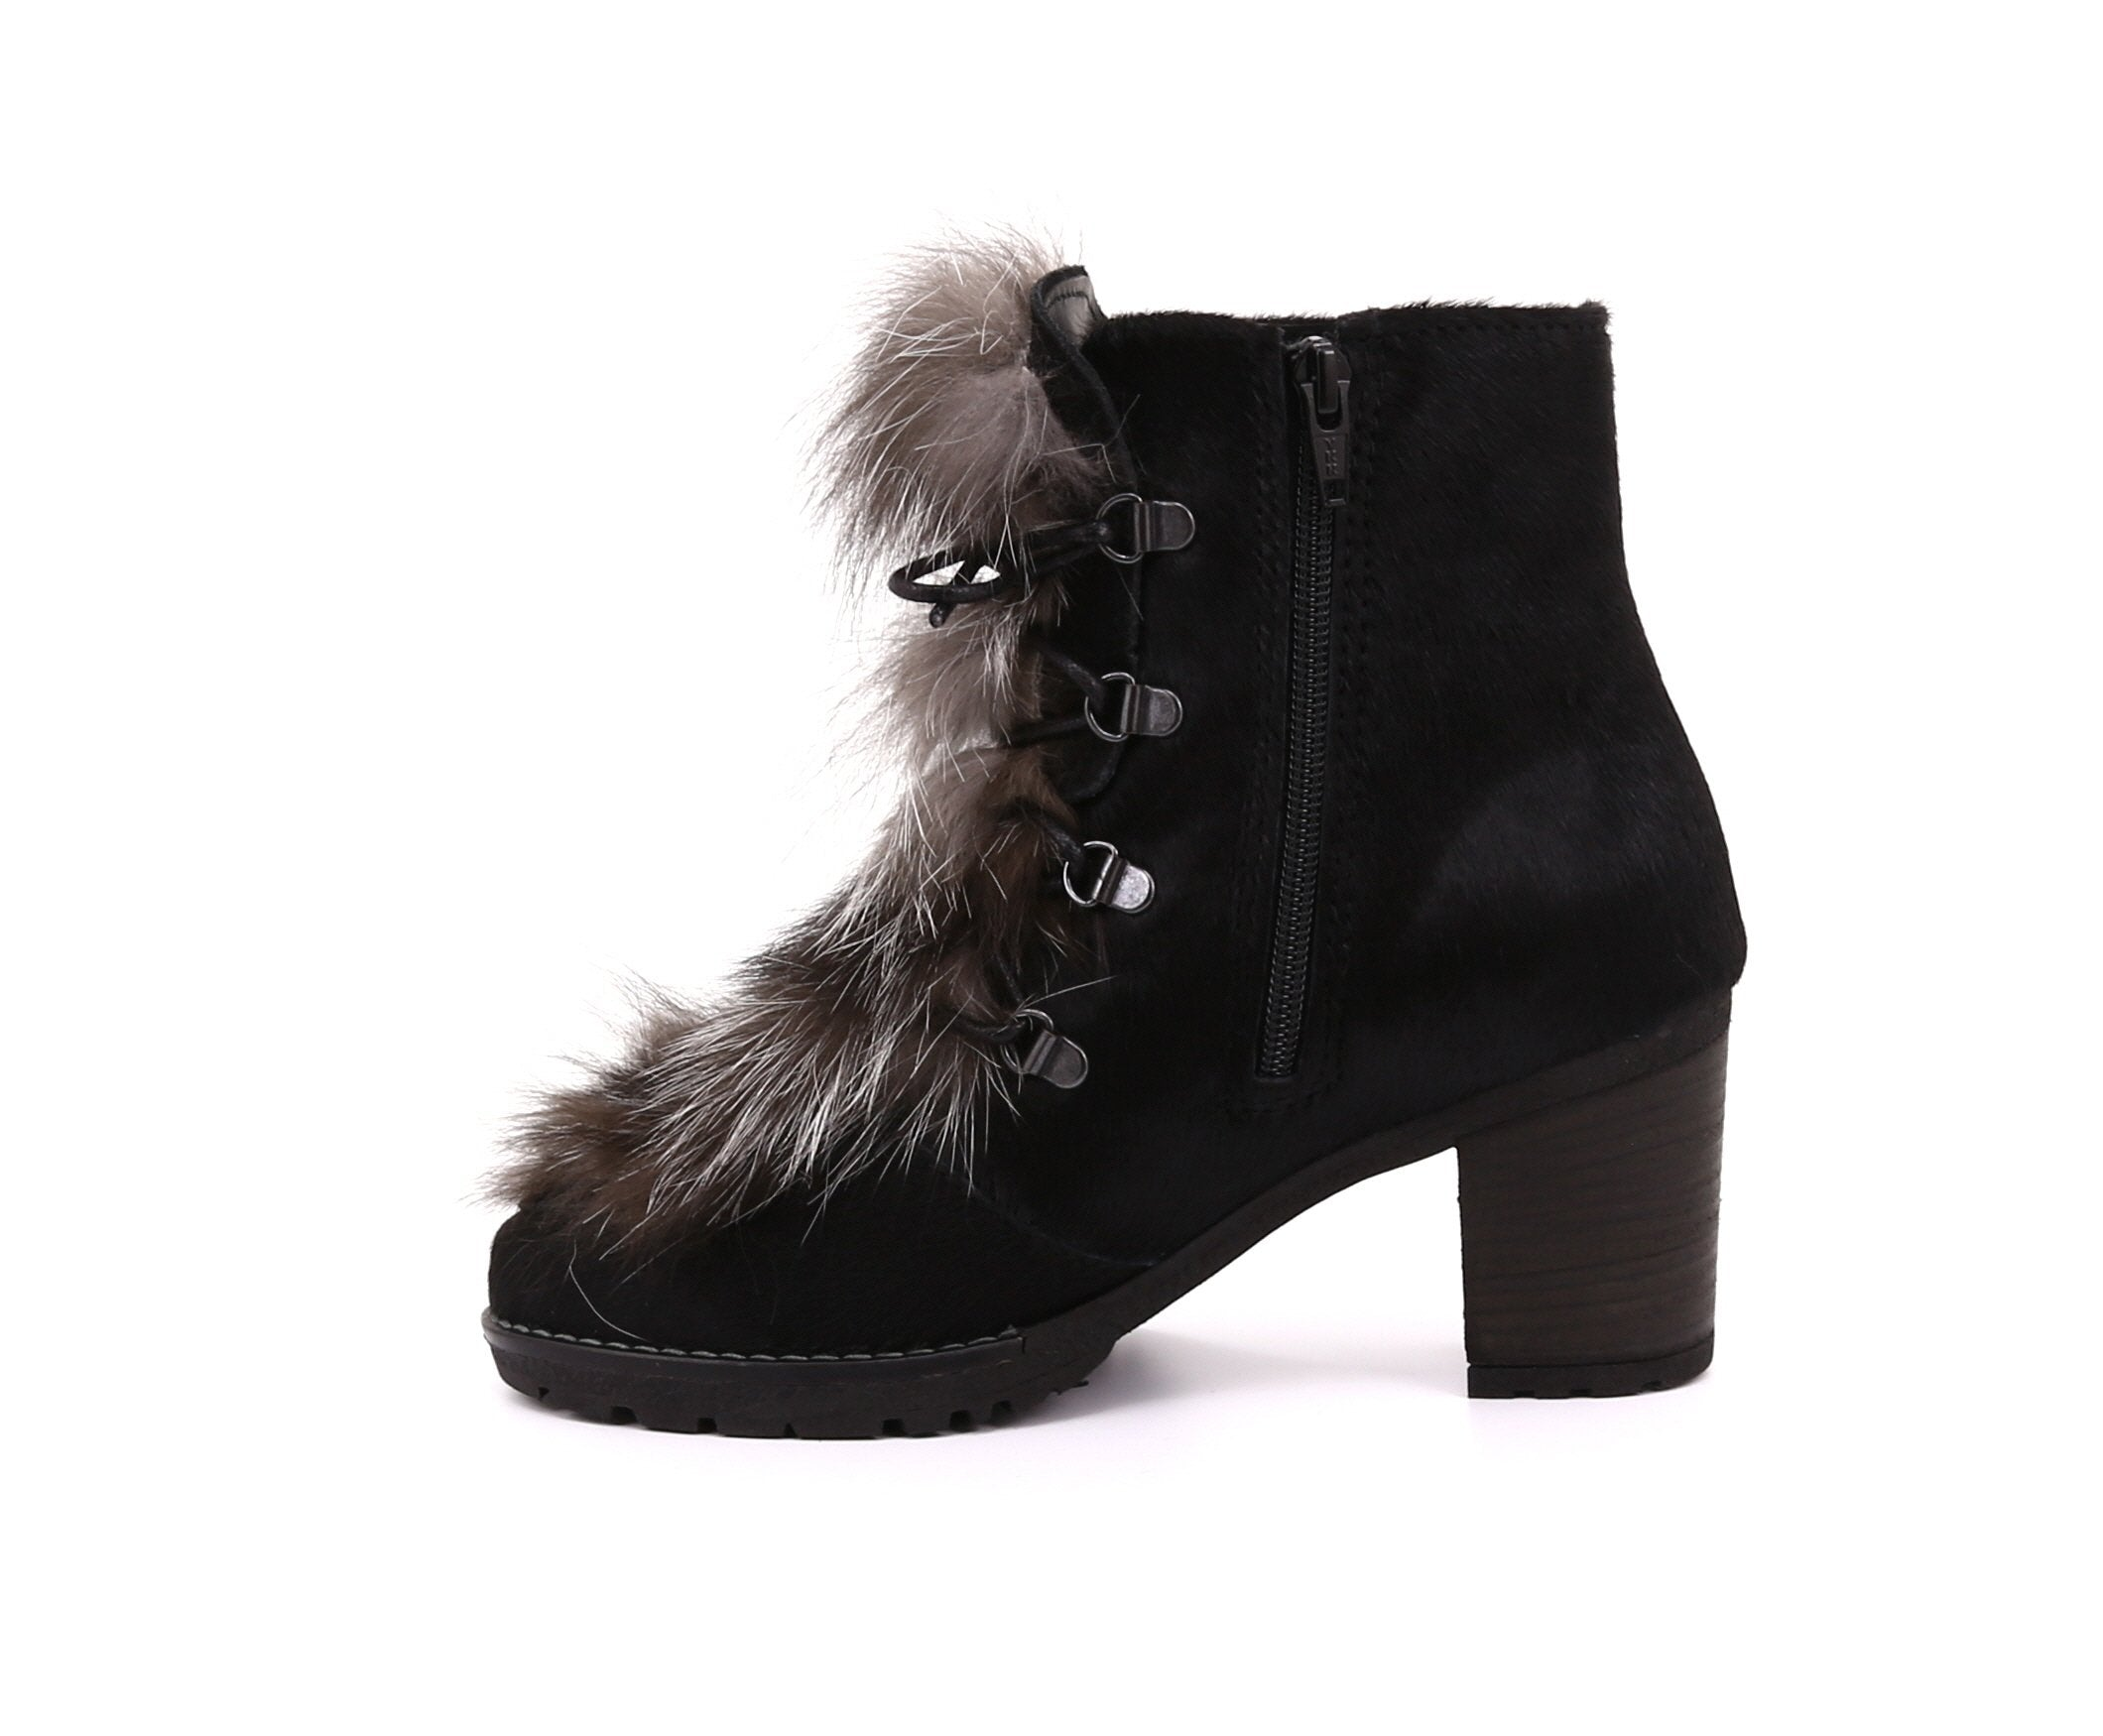 Charlotte Women's Winter Boot in Hairy Leather with Recycled Fur - Alfred Cloutier Ltd. - Canada